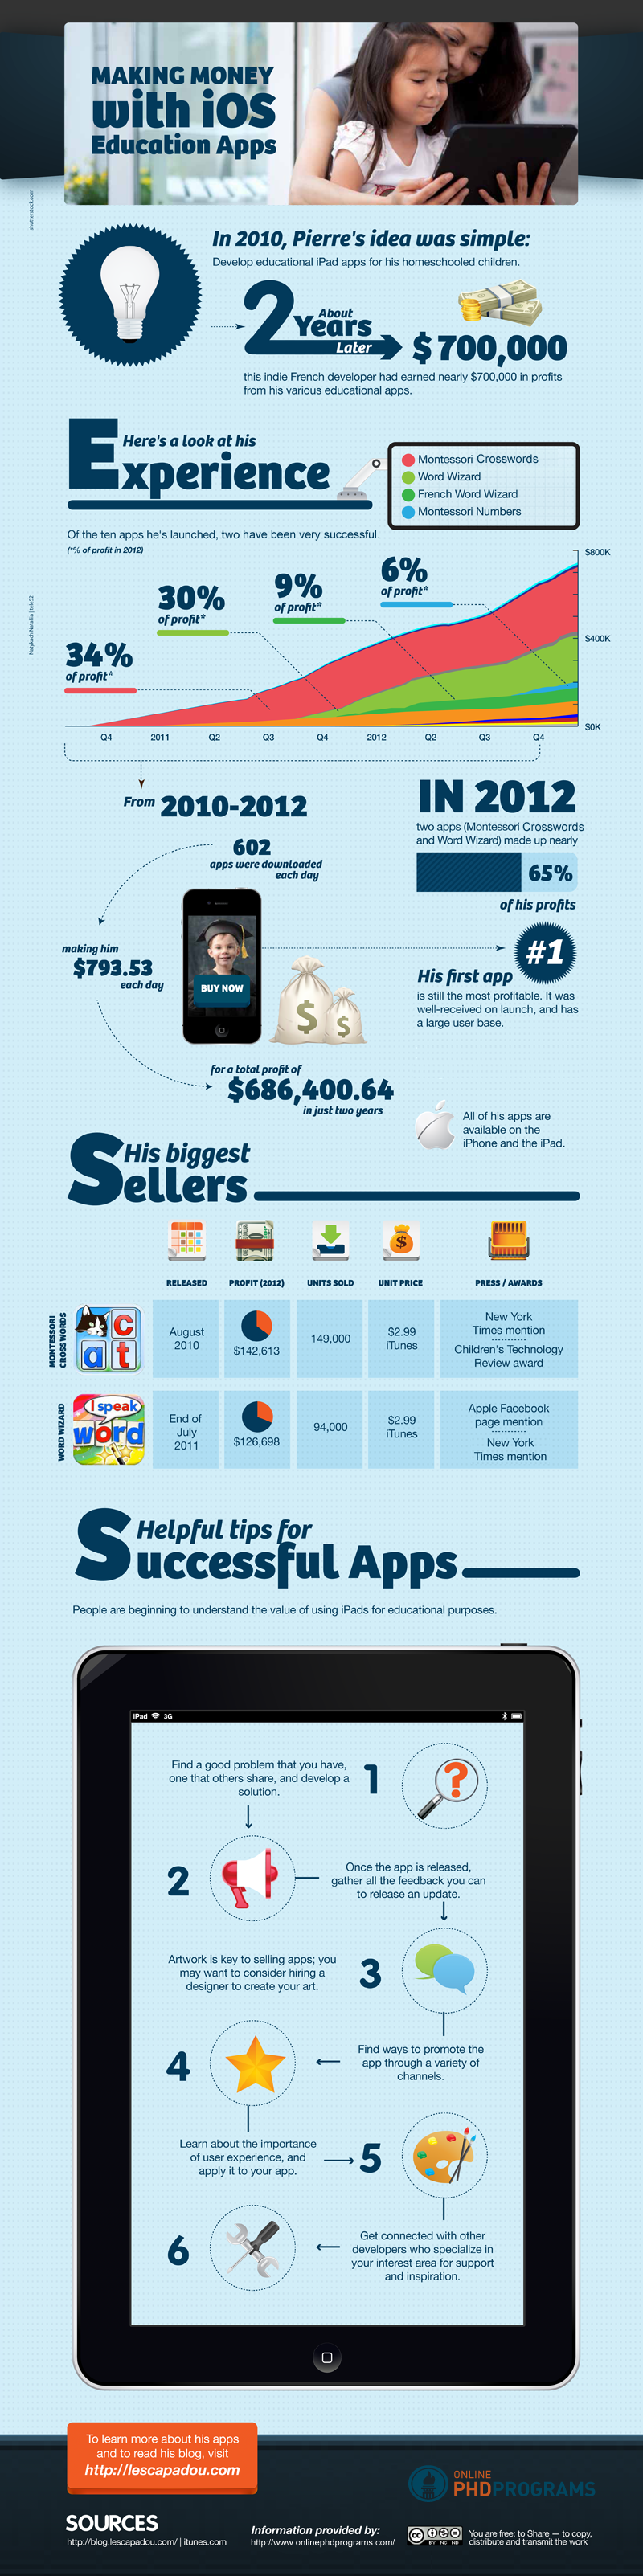 Making Money with iOS Education Apps